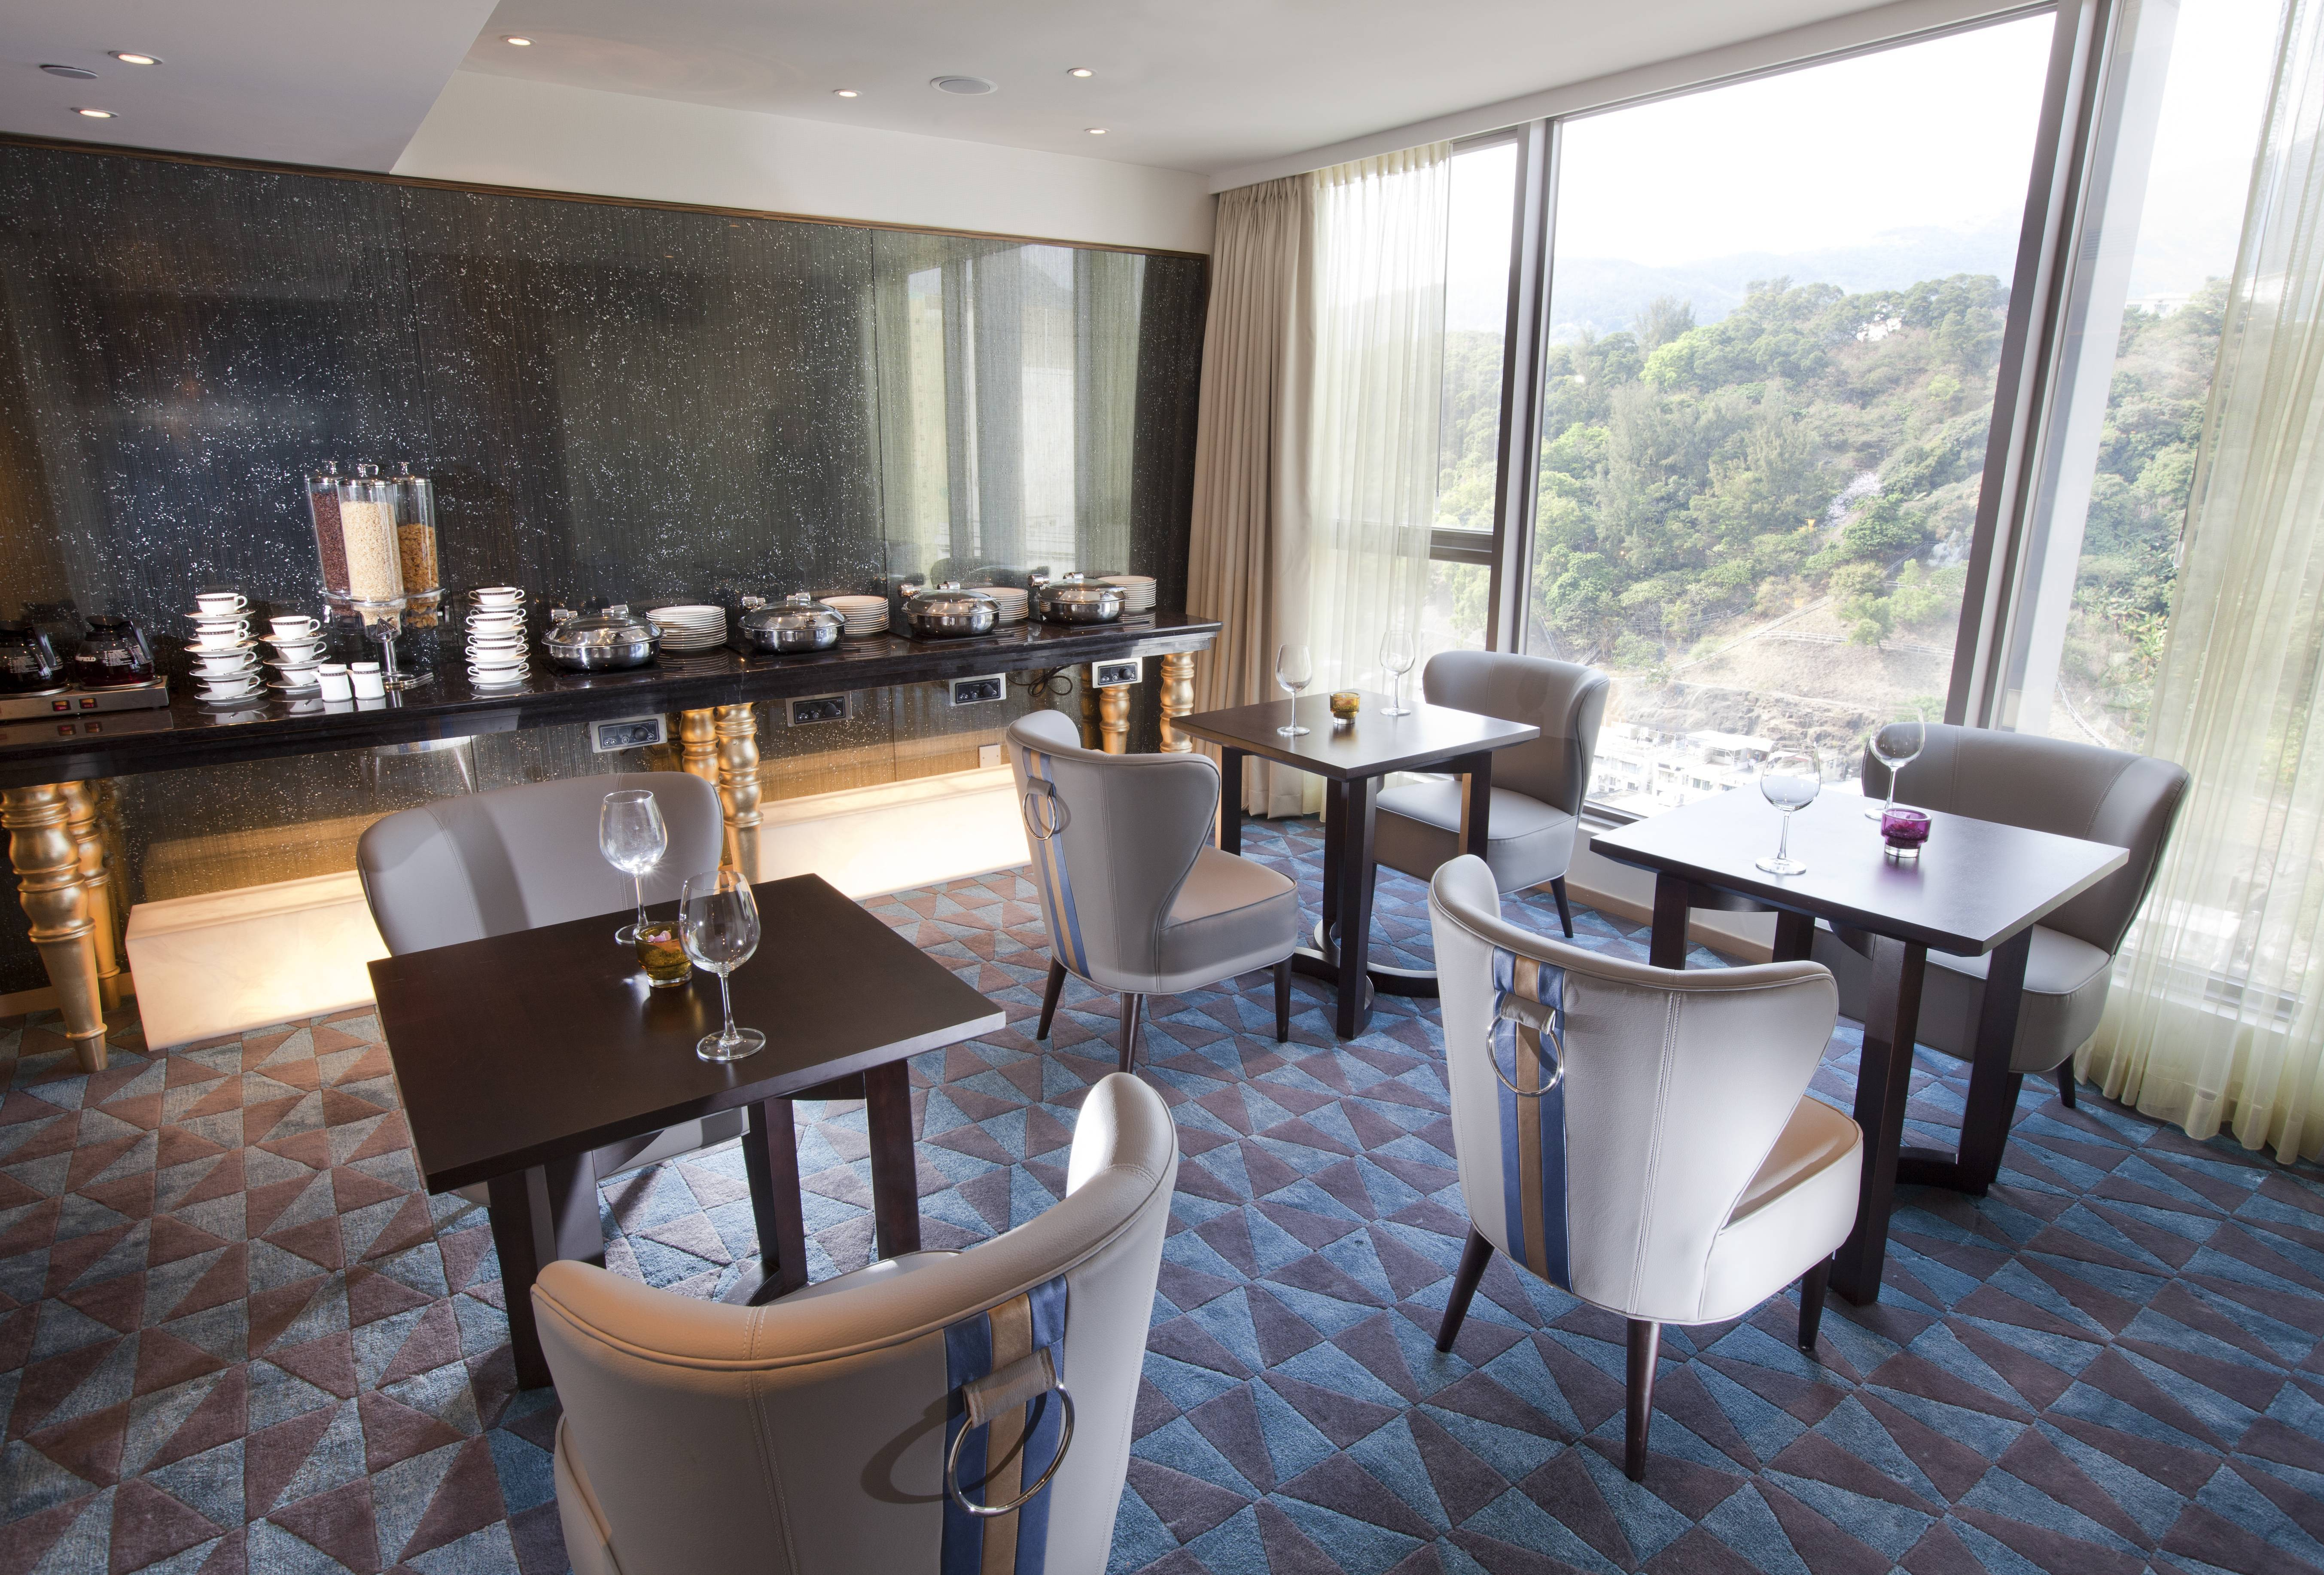 Dorsett Club Lounge Catch up on the day's work or relax over drinks